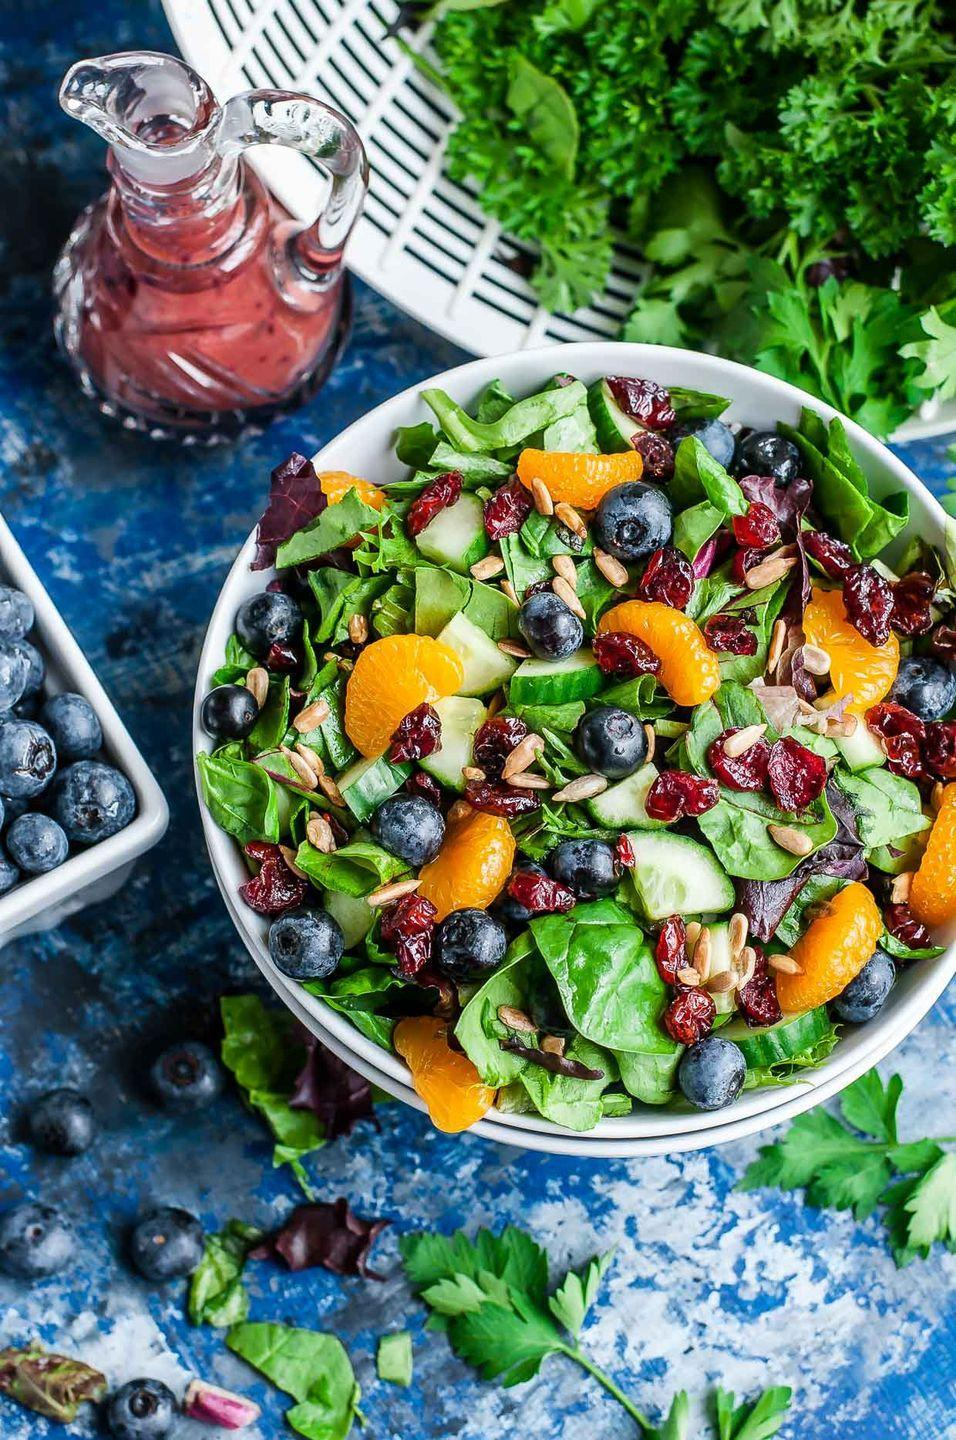 """<p>Send everyone's sweet cravings into overdrive with this summer side salad, which features a blueberry balsamic dressing as an added fruity enhancement. </p><p><strong>Get the recipe at <a href=""""https://peasandcrayons.com/2017/05/cranberry-blueberry-spring-mix-salad.html"""" rel=""""nofollow noopener"""" target=""""_blank"""" data-ylk=""""slk:Peas and Crayons"""" class=""""link rapid-noclick-resp"""">Peas and Crayons</a>. </strong> </p>"""